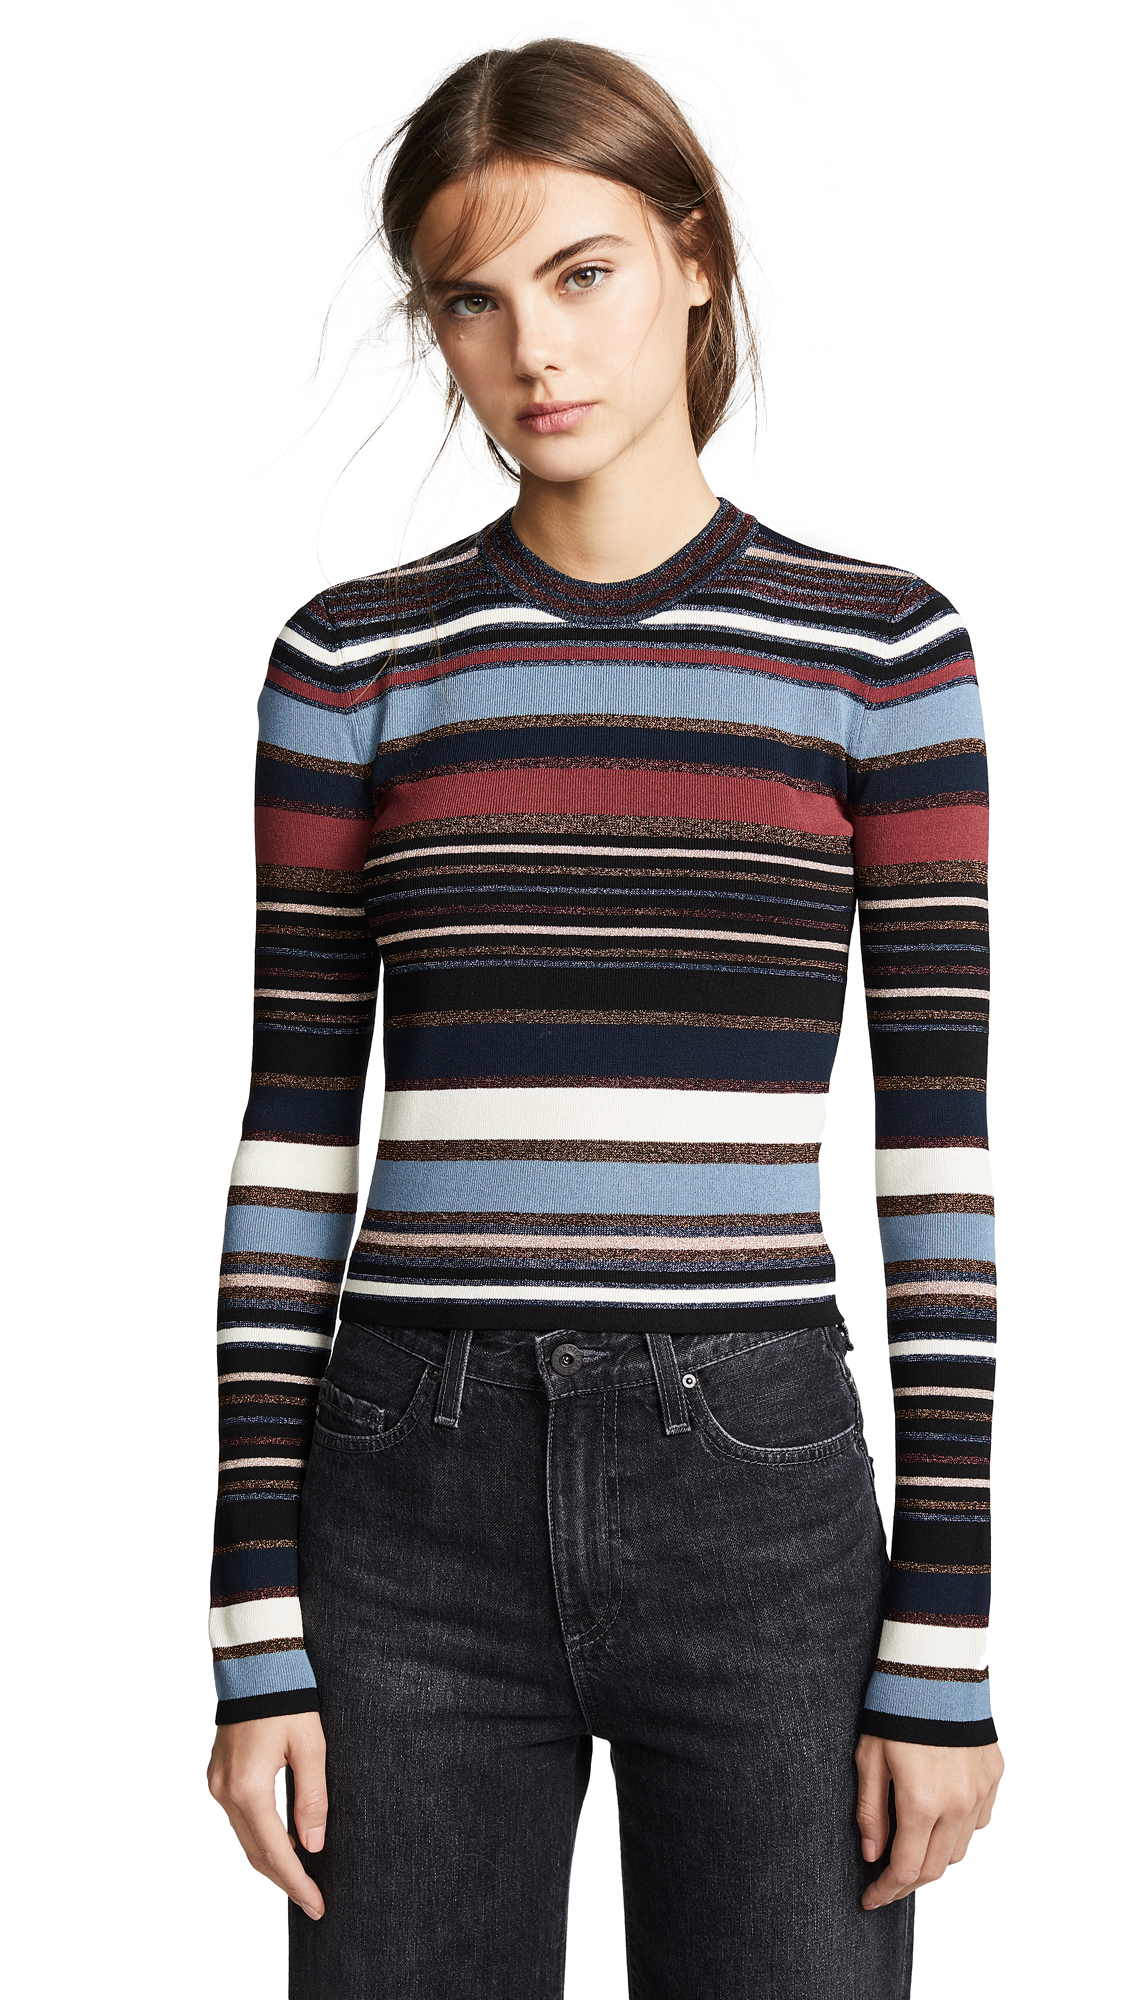 Palmas Striped Metallic Cropped Sweater in Navy Multi